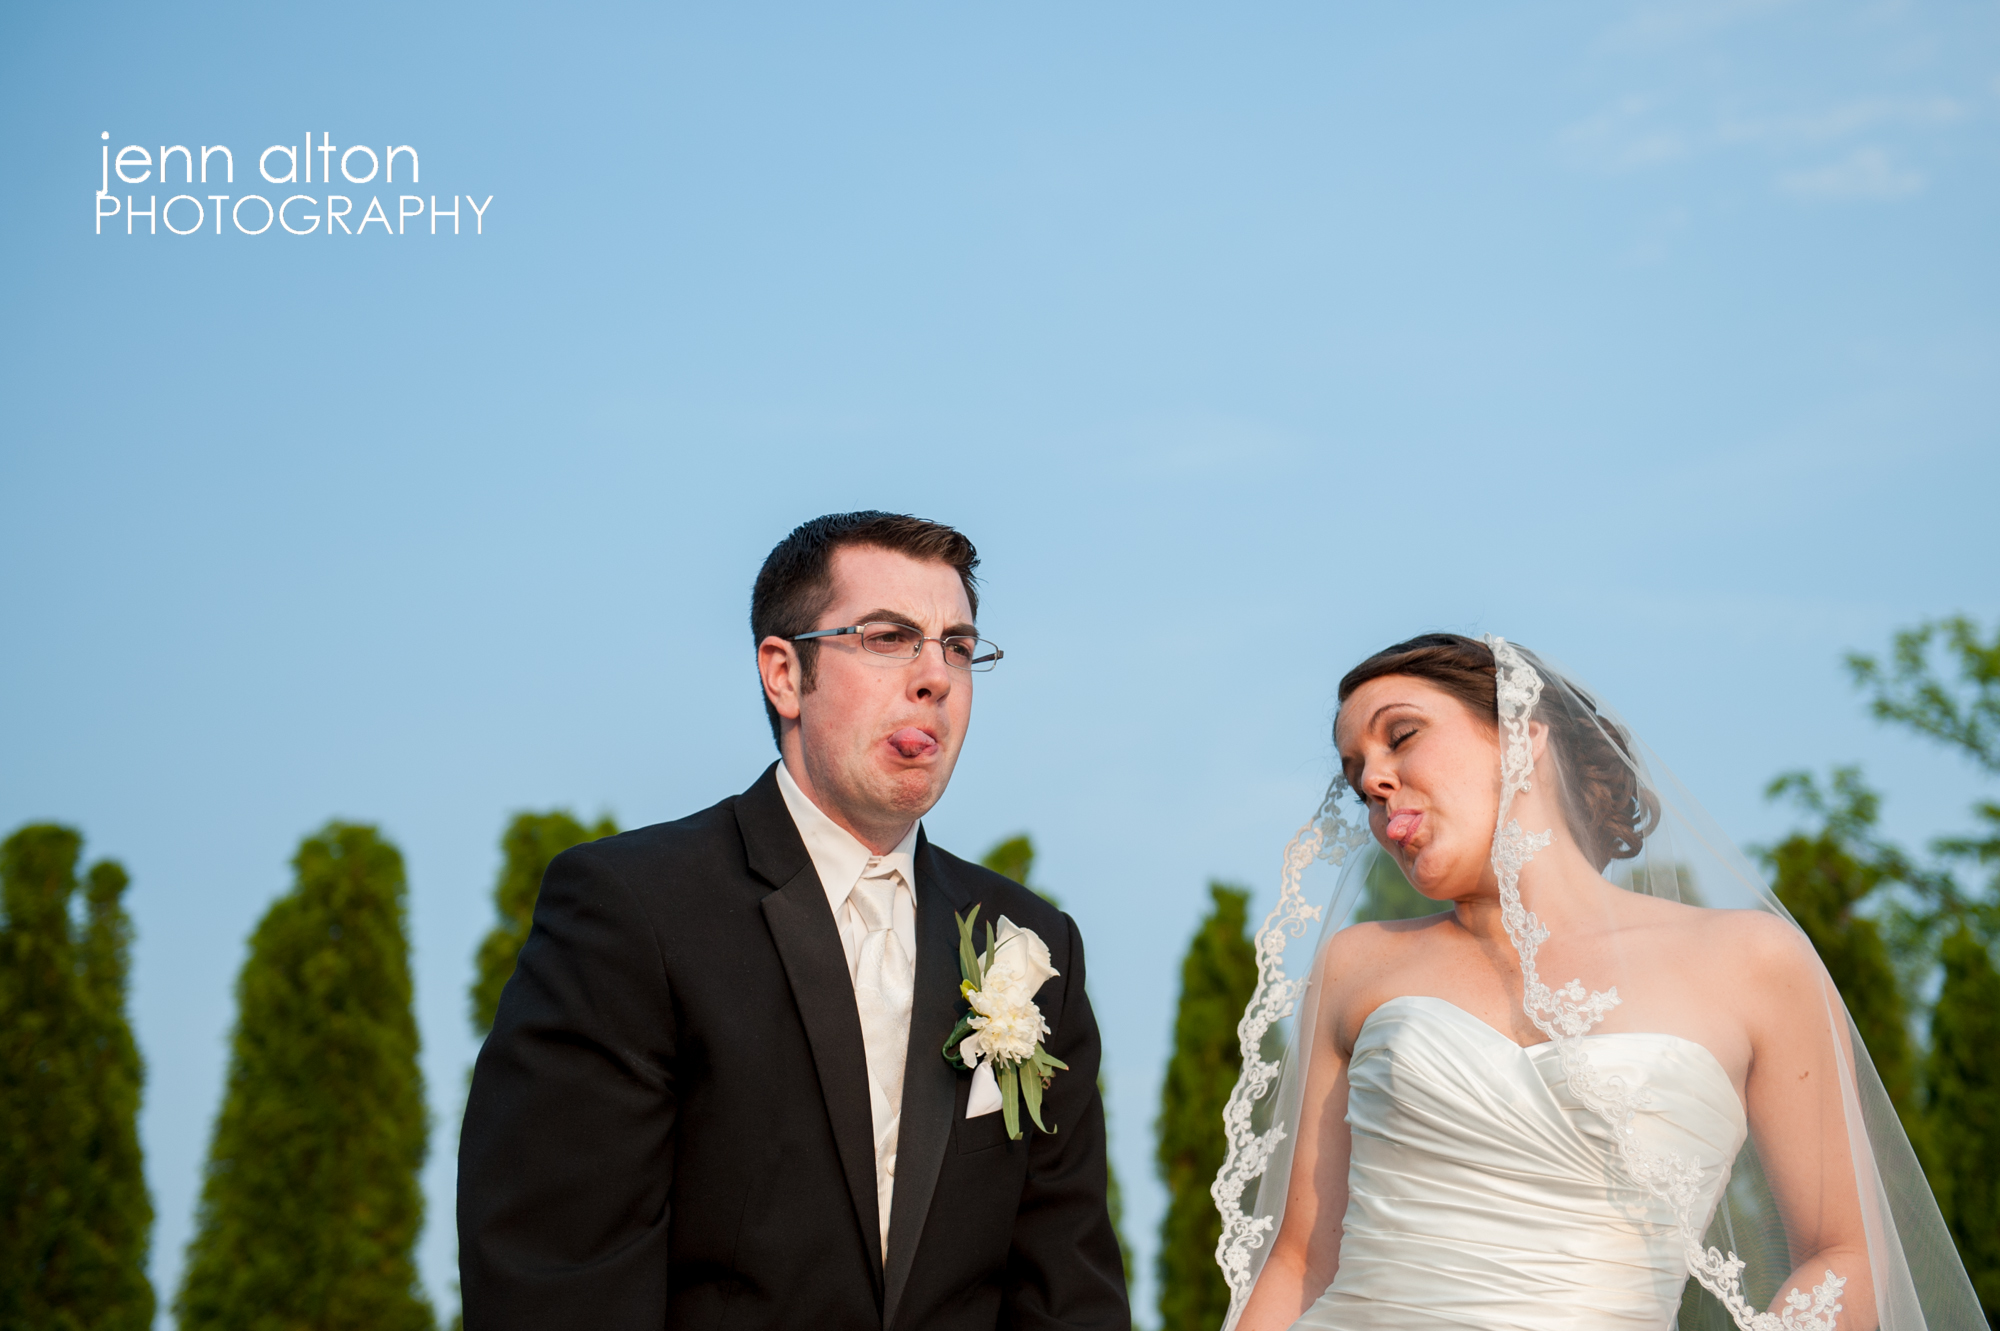 Non-serious, Bride and Groom portrait